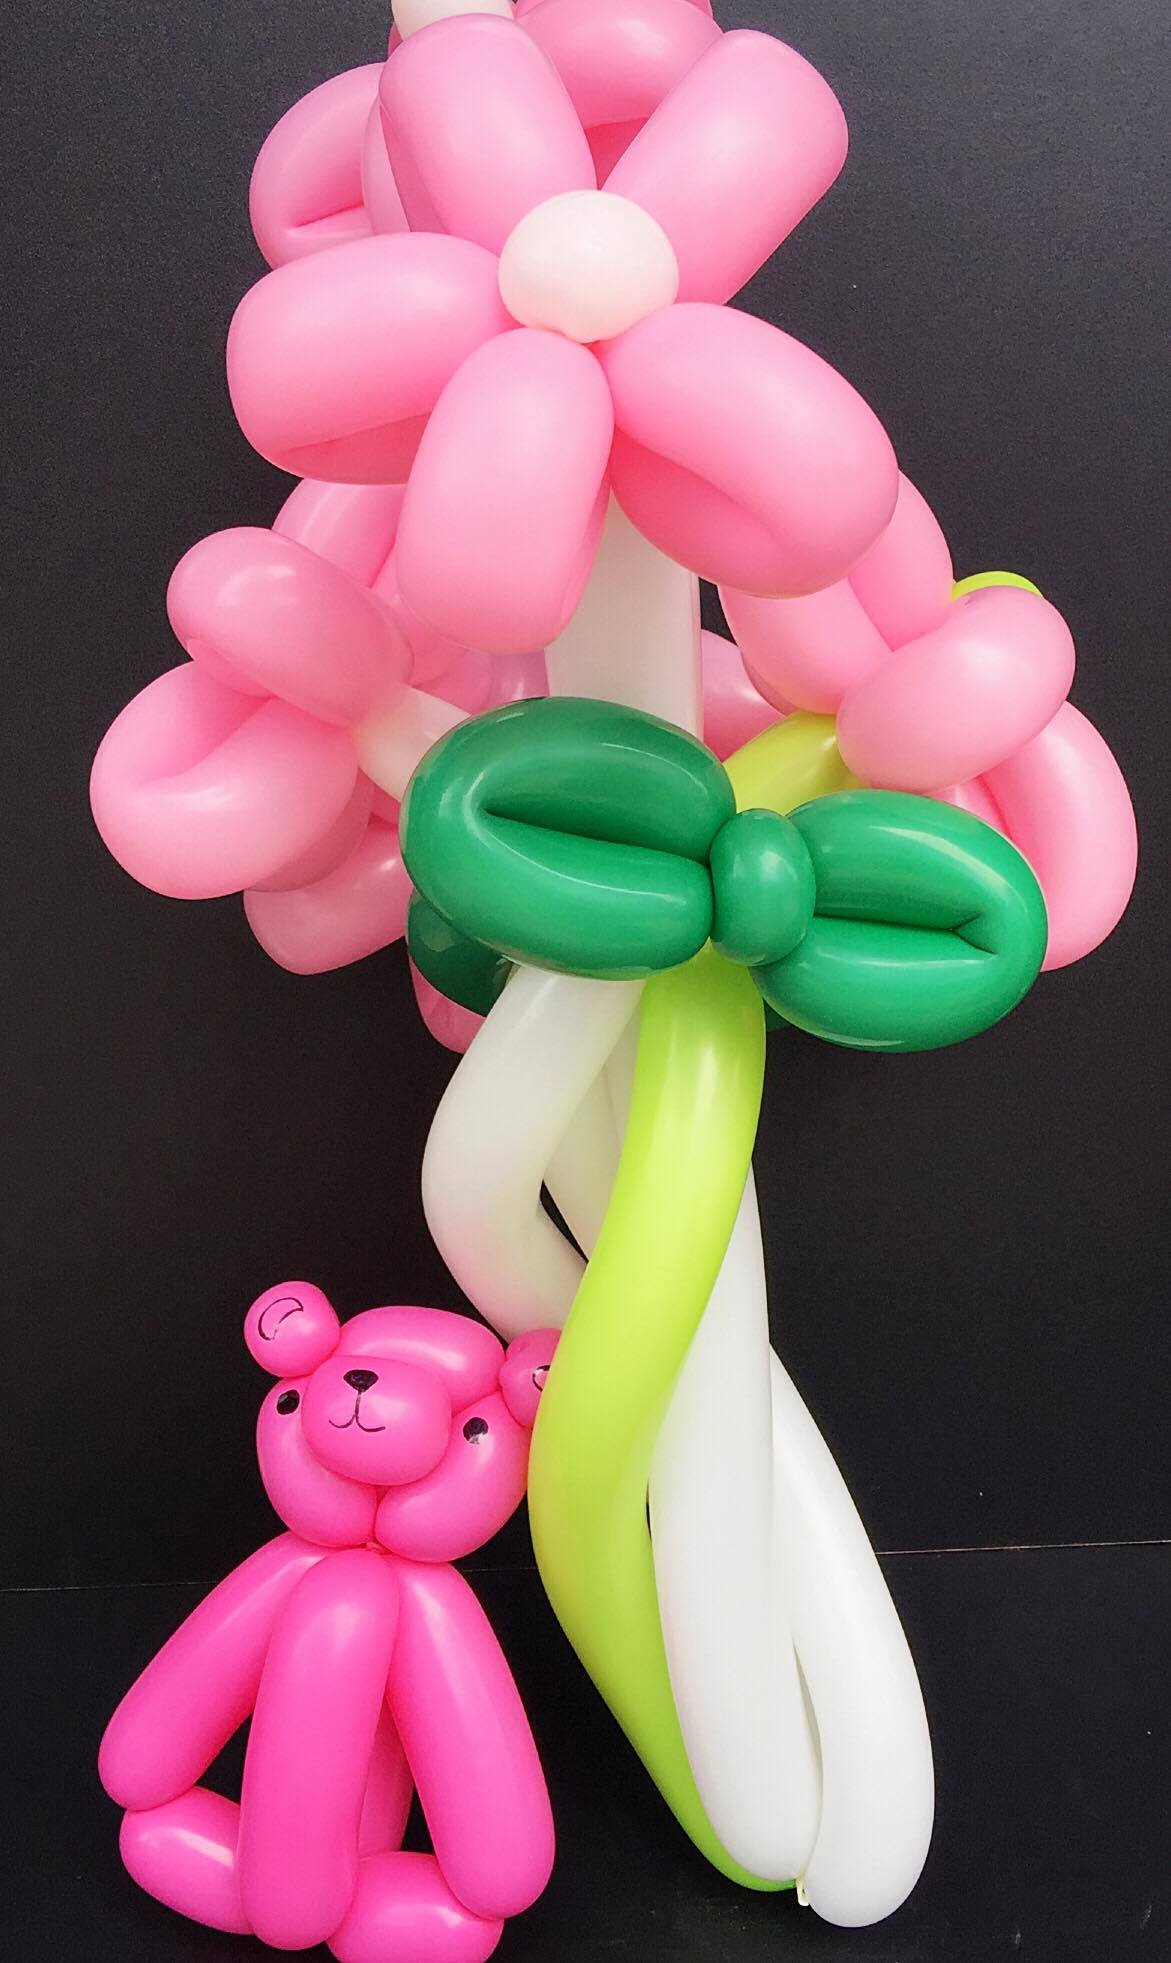 Balloon Flowers and Bear (4mua VOT-002BF2)